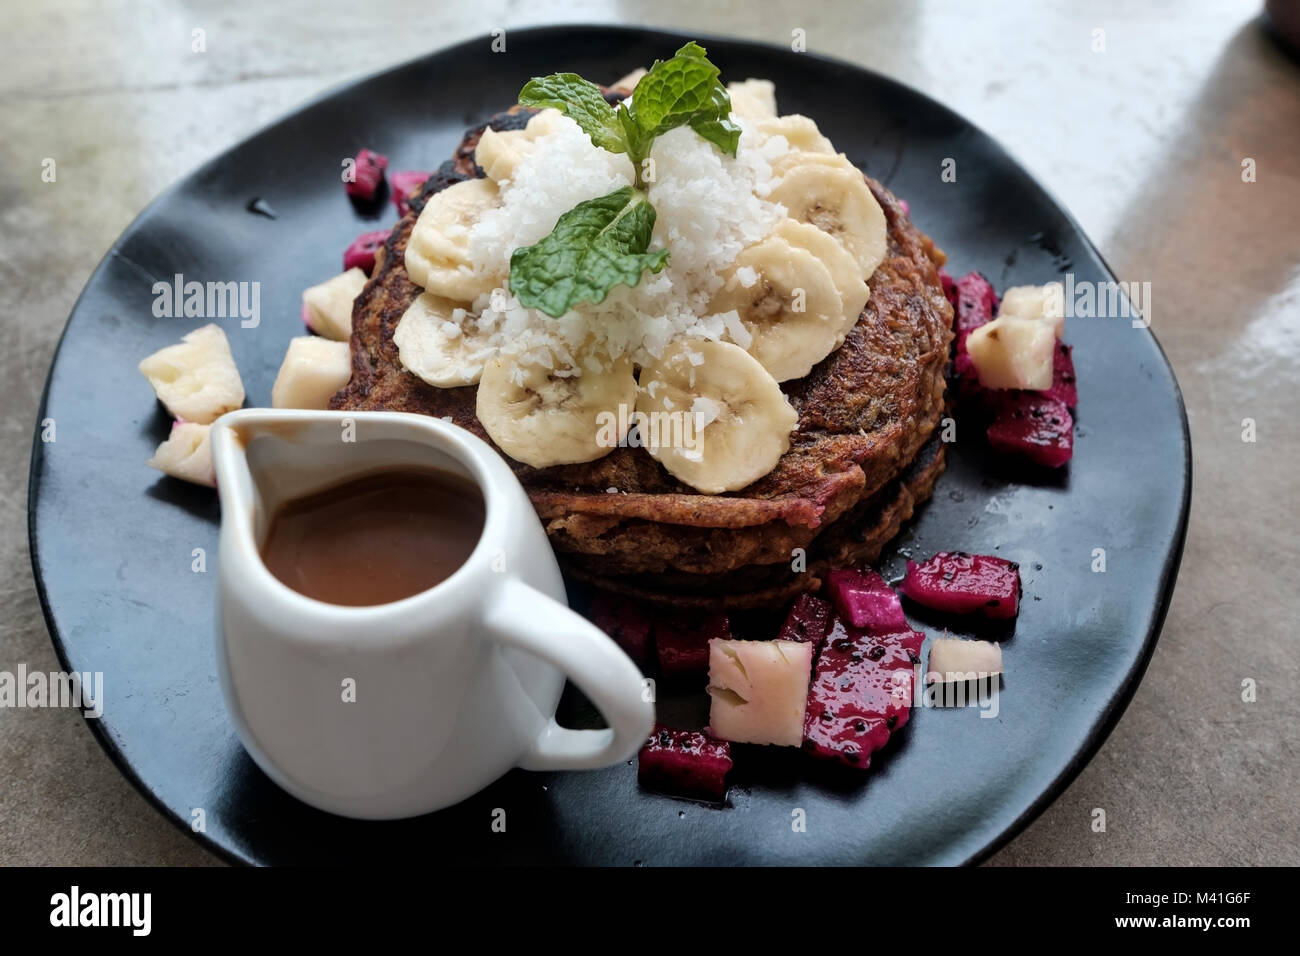 Vegan brown pancakes with banana and chocolate source for breakfast. - Stock Image